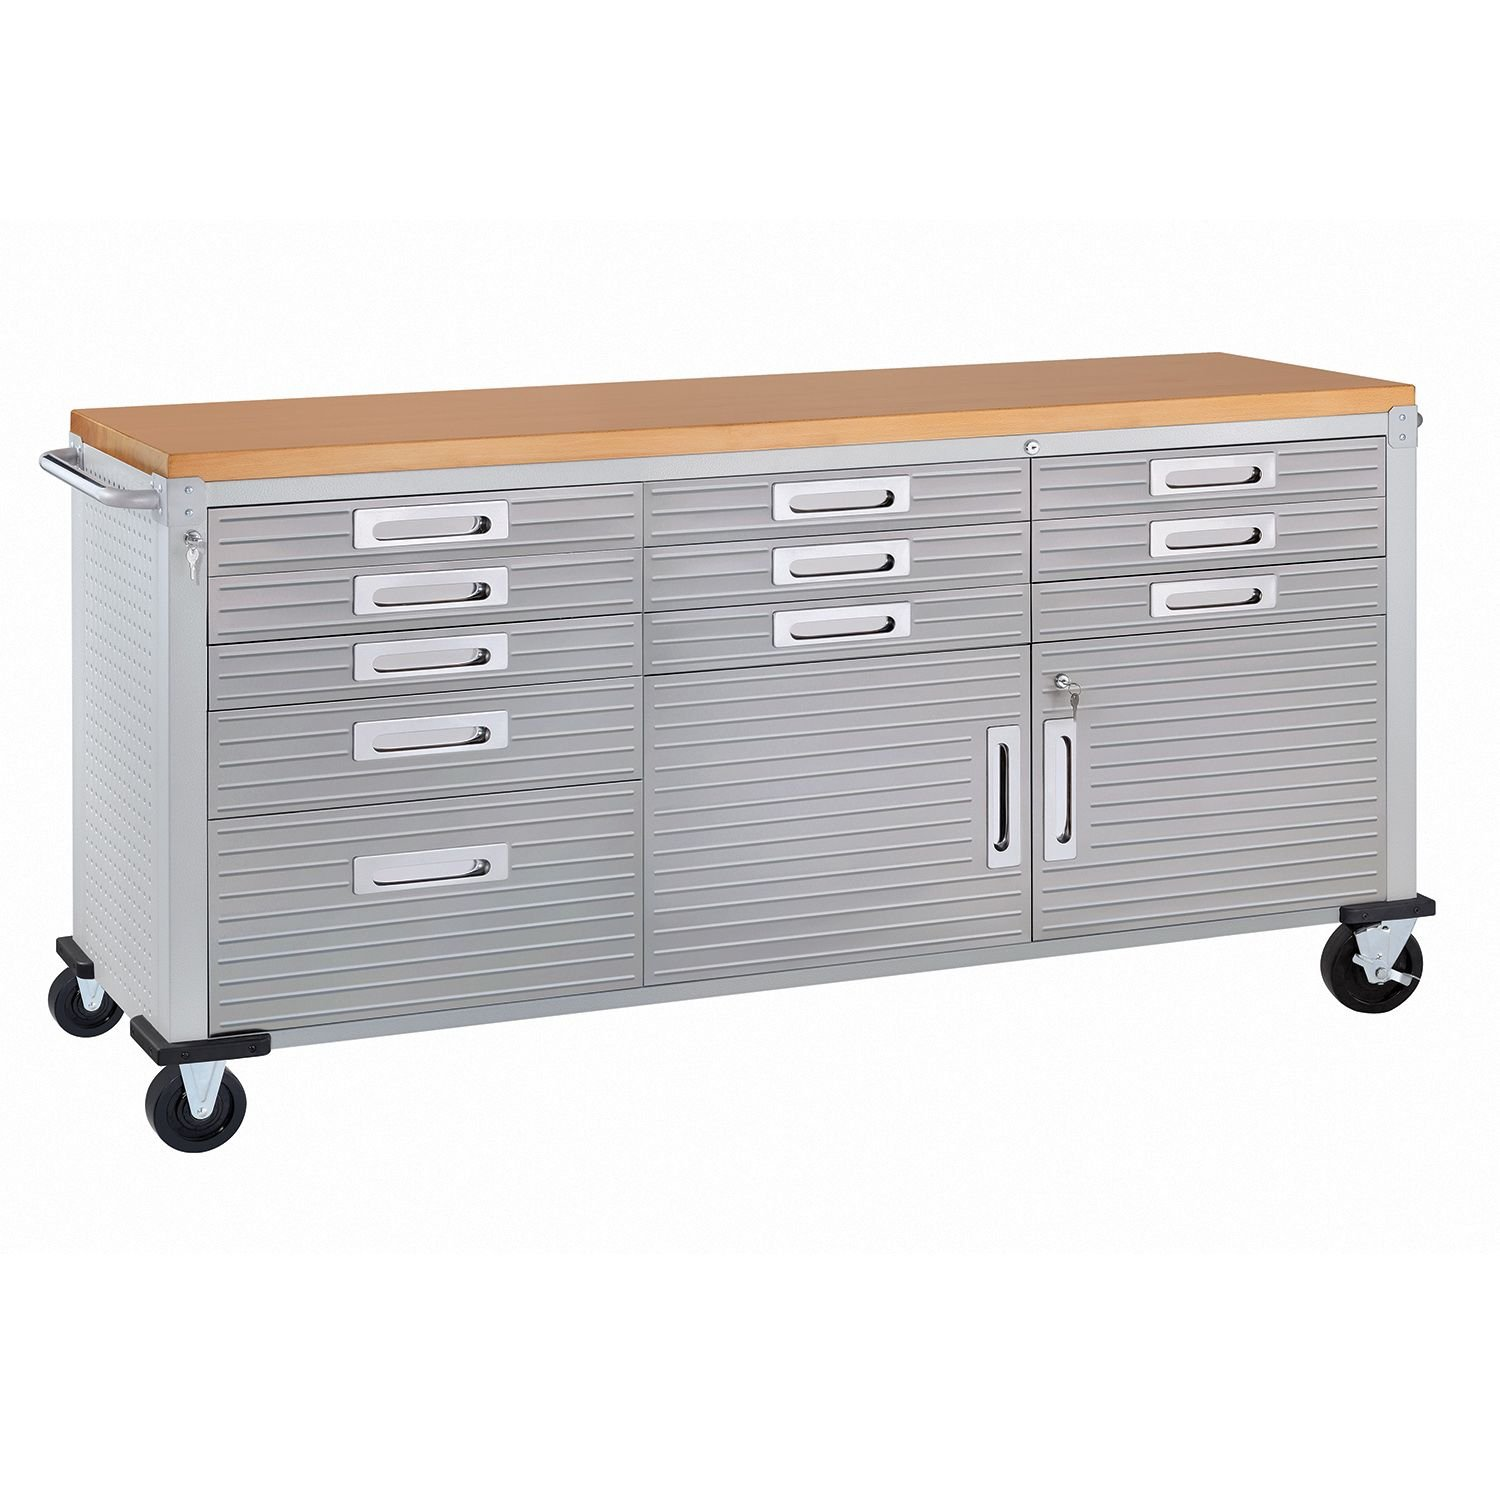 used source all vi duty vidmar outlets idea for drawer sophisticated captivating stanley and furniture cabinets with storage cabinet mobile garage keys heavy amazing workbench drawers